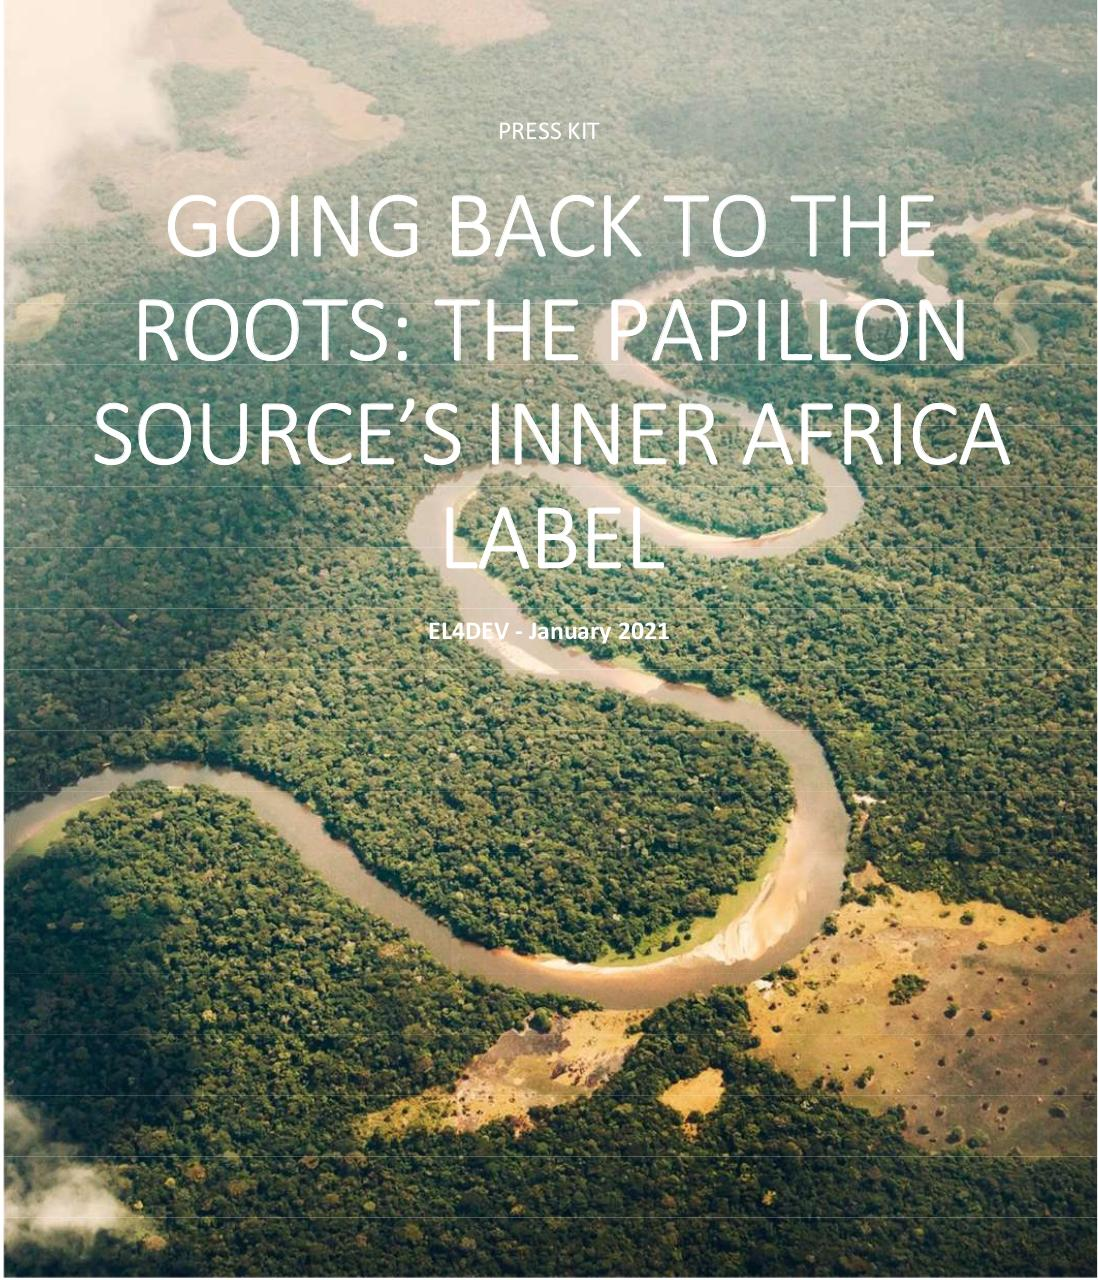 THE PAPILLON SOURCE INNER AFRICA.pdf - page 1/10